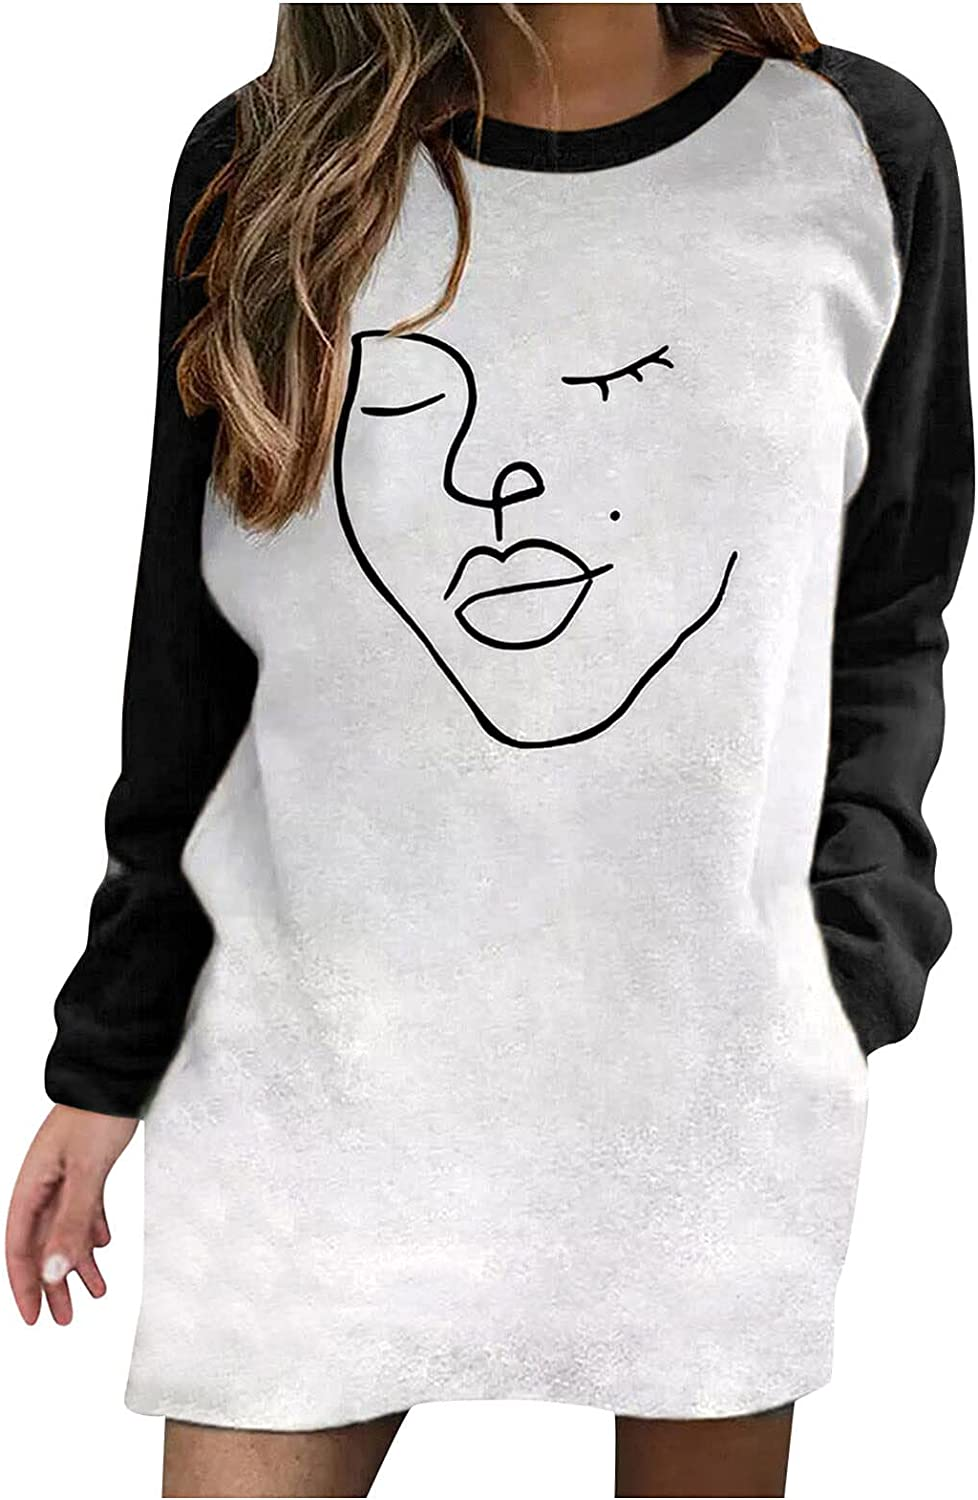 Women's Long Sleeve Sweatshirts Halloween Tops Vintage Car Graphic Pullover Comfort Casual Blouse